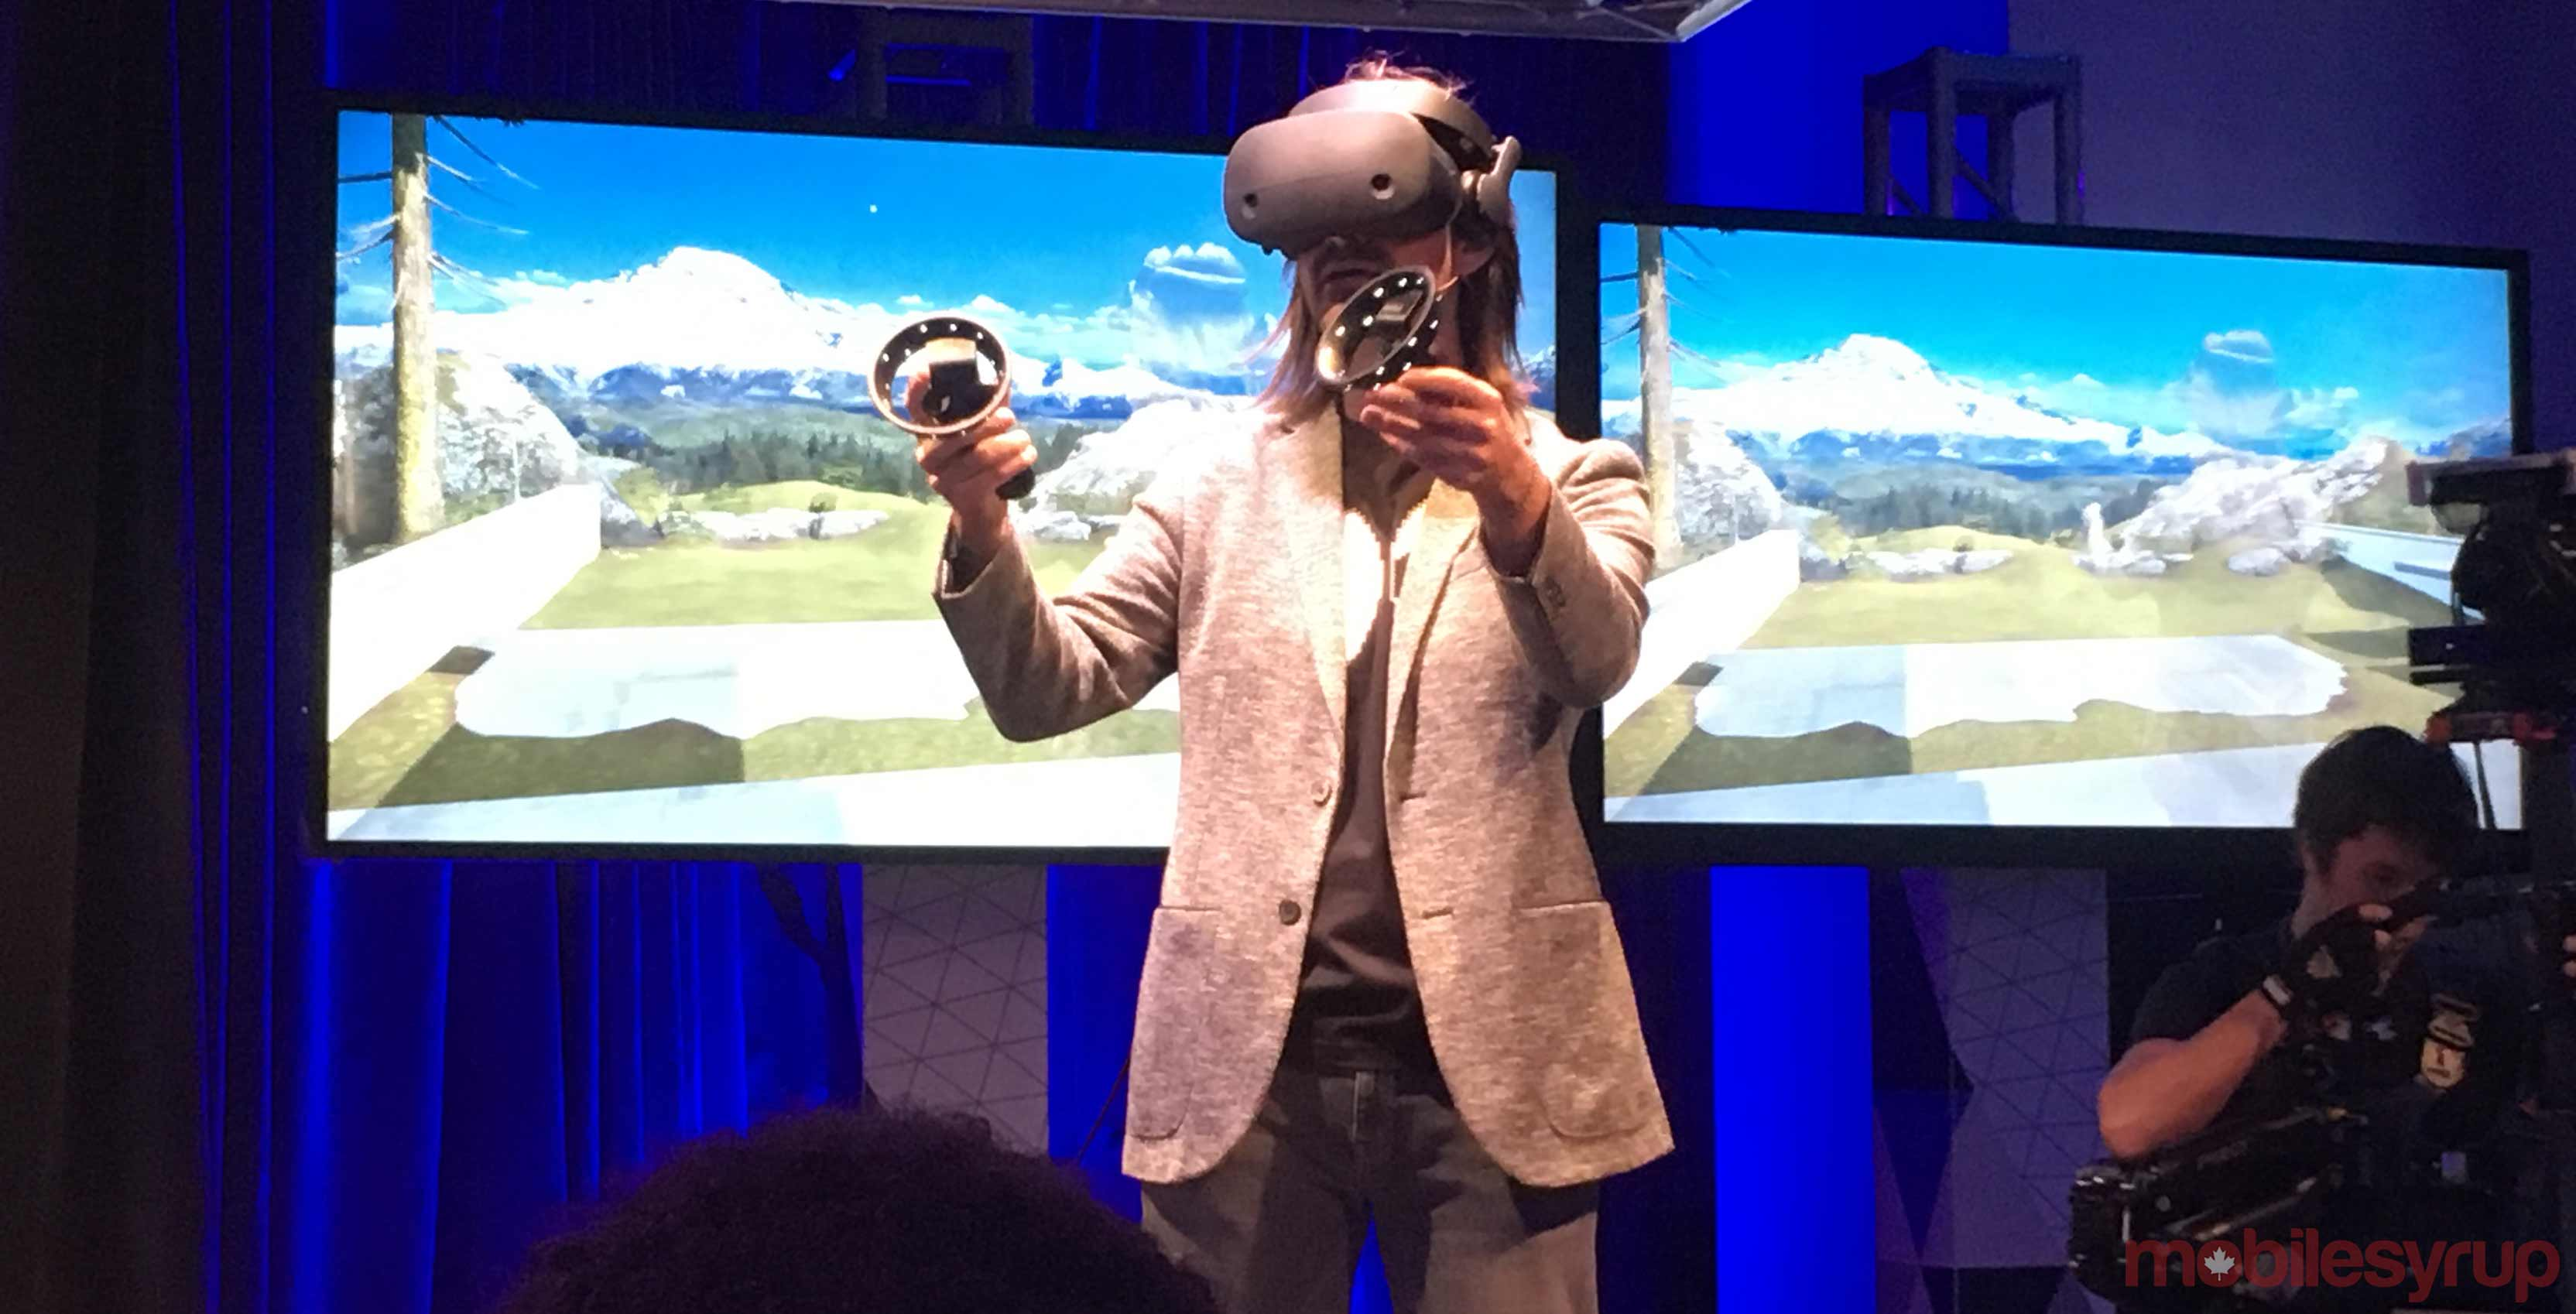 Alex Kipman using mixed reality